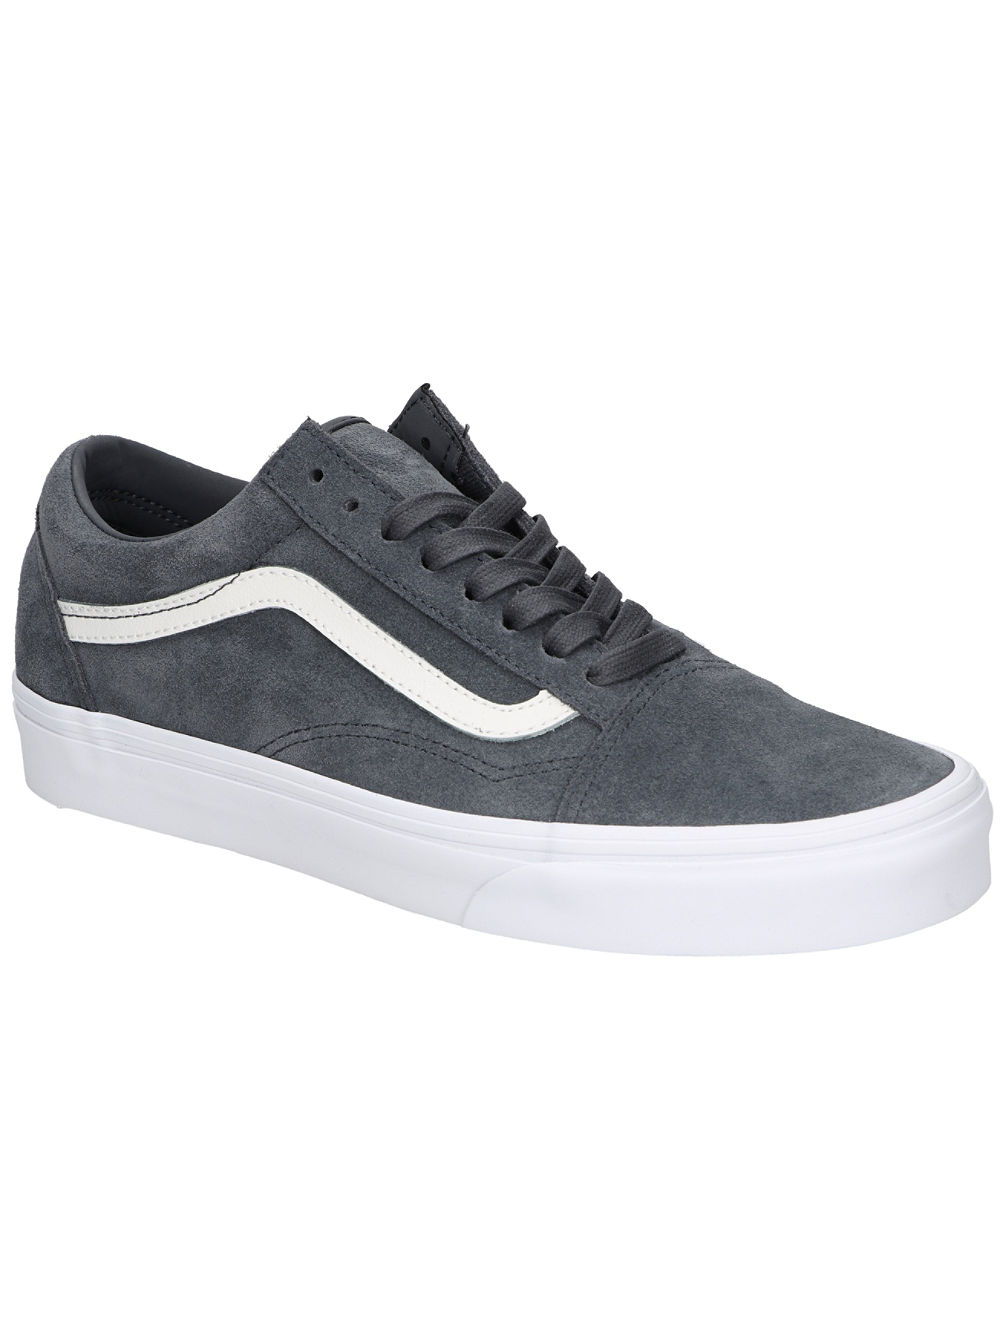 657ad6e929e7f7 Buy Vans Soft Suede Old Skool Sneakers online at Blue Tomato